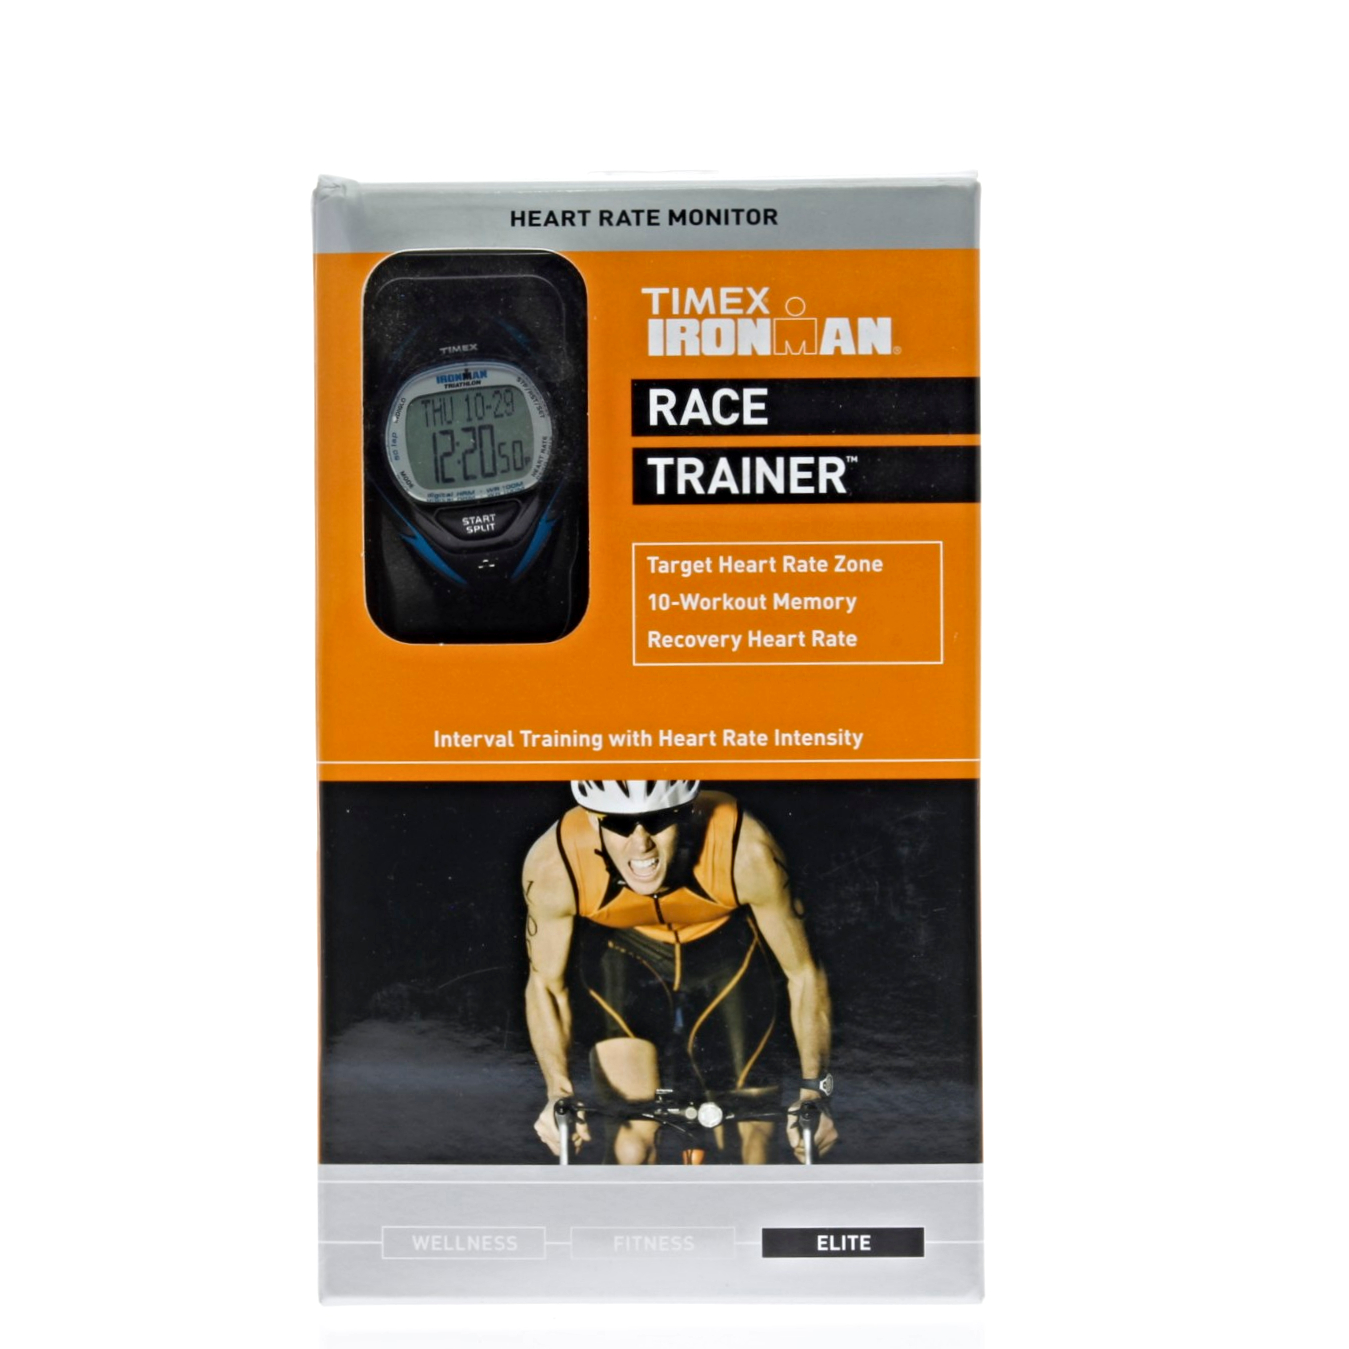 Timex personal trainer t5g971 heart rate monitor smart monkey.